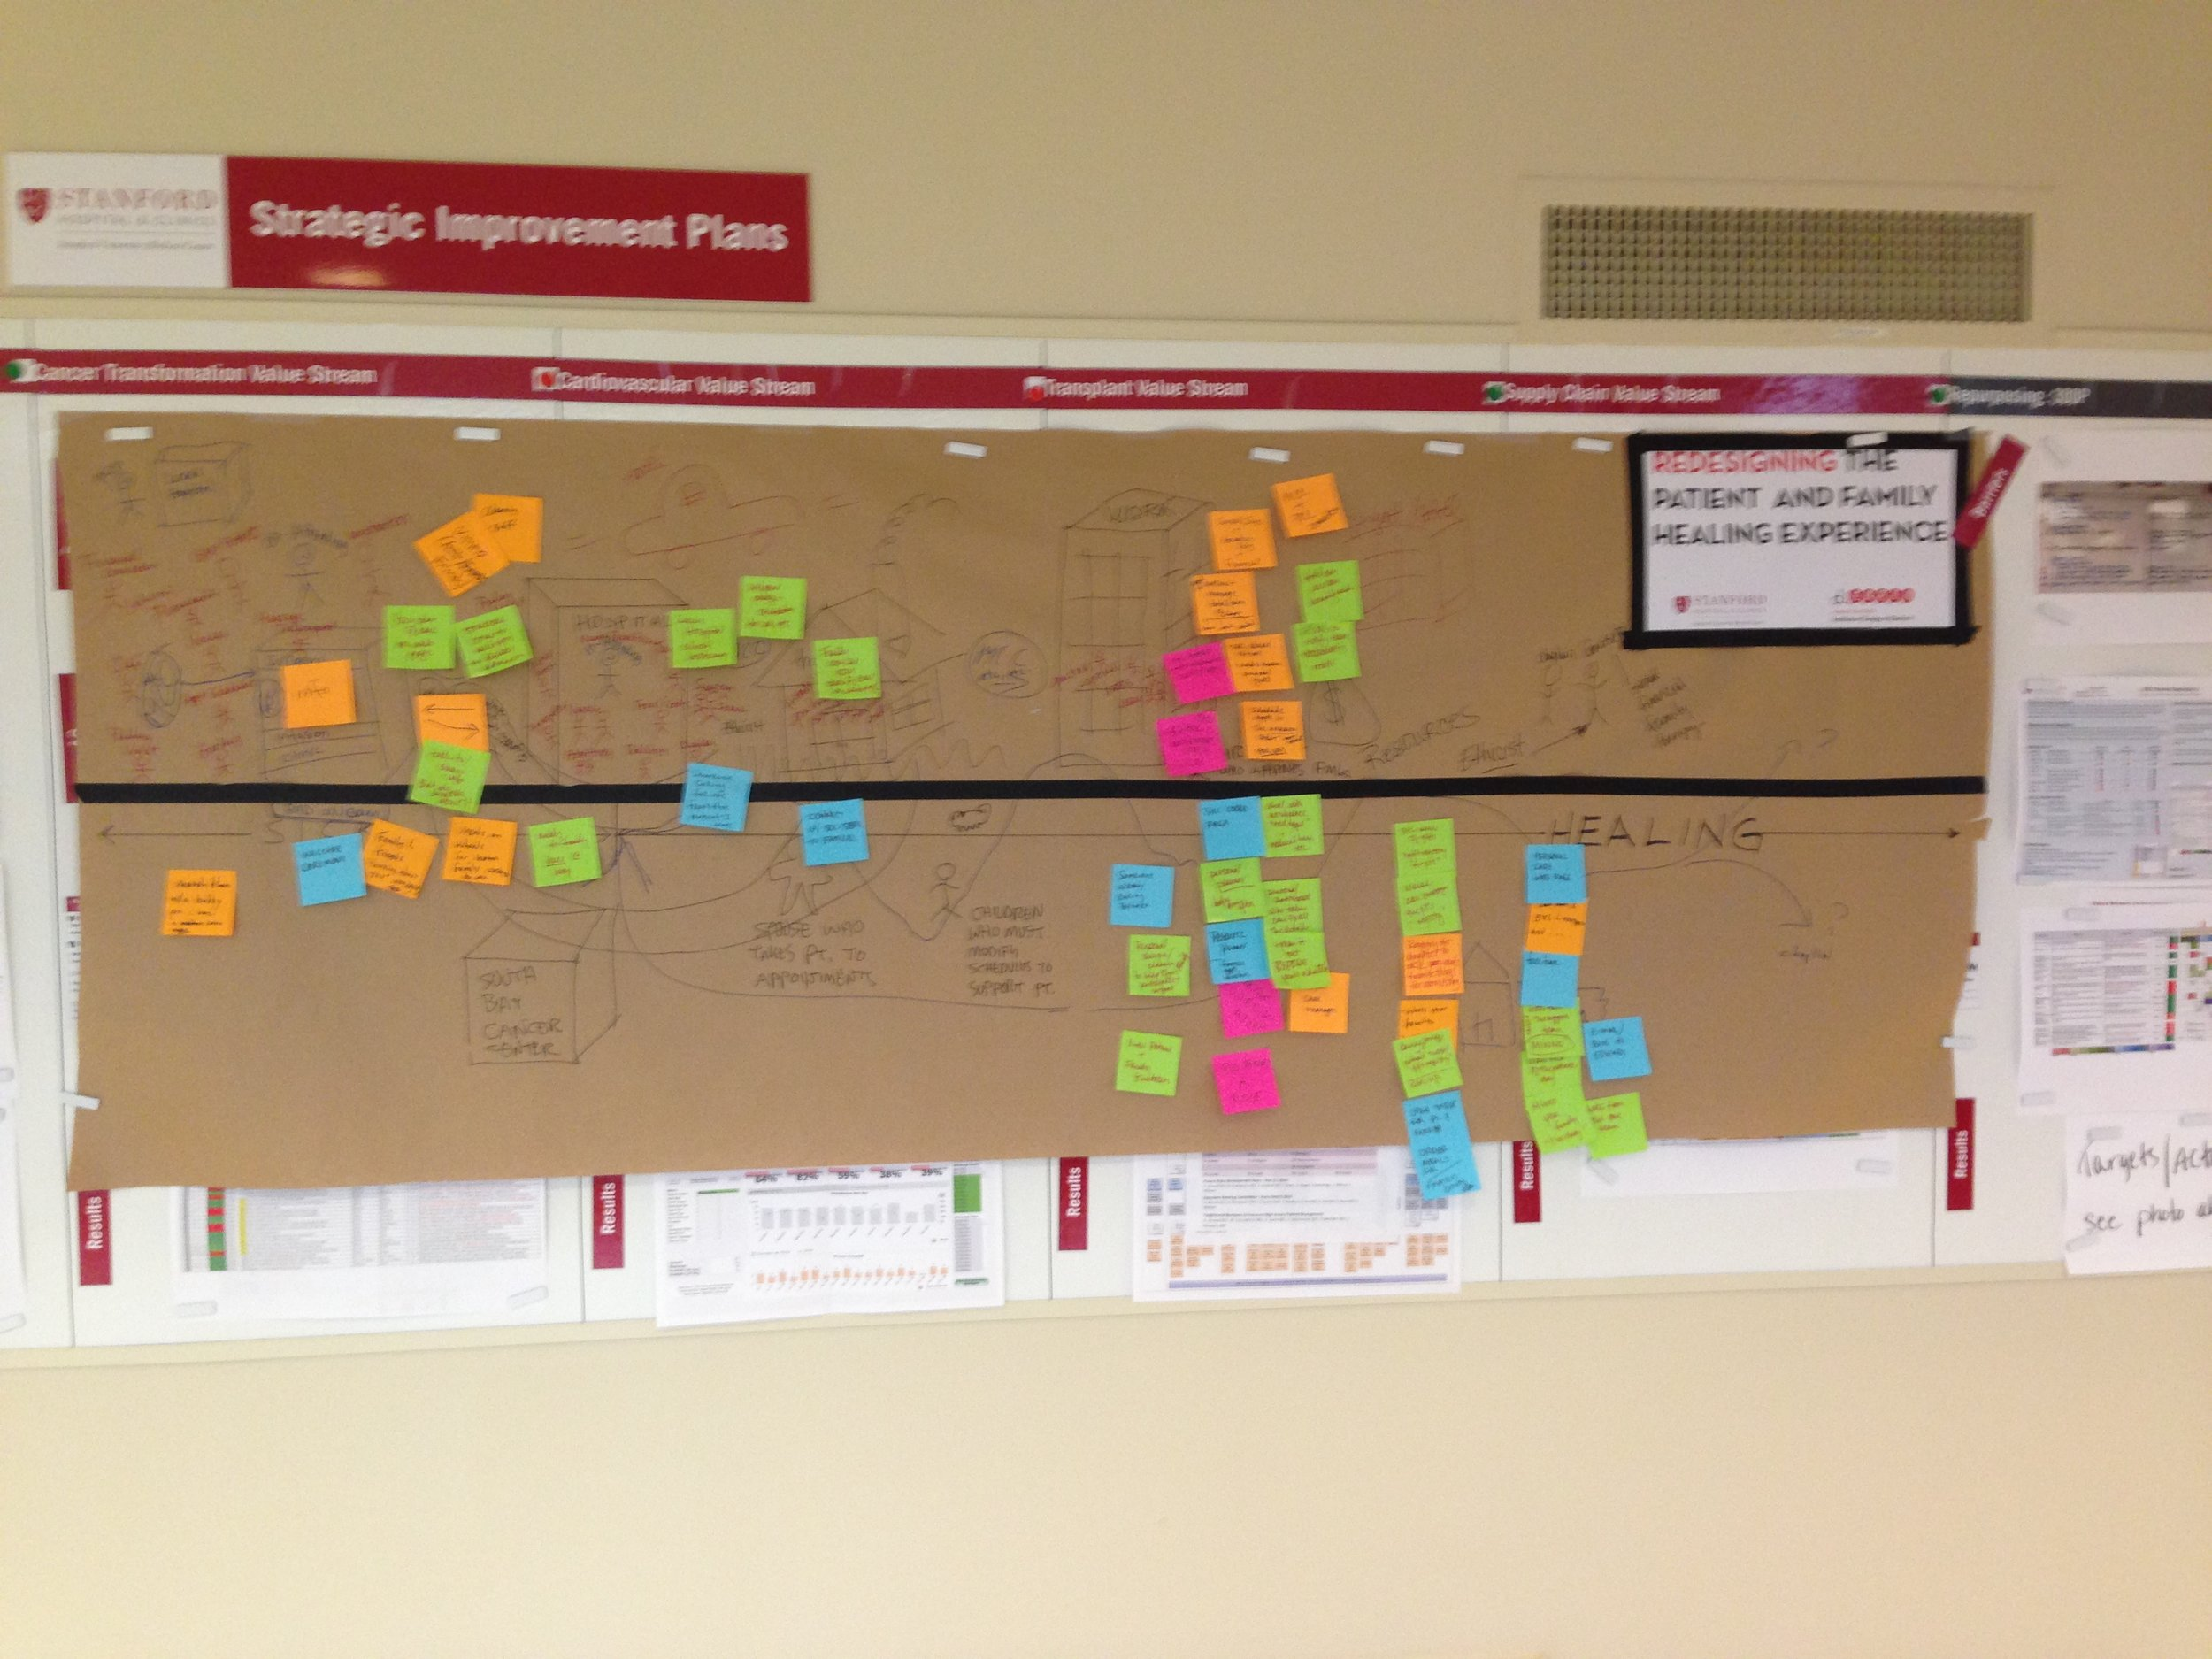 Journey map of the healing experience for a cancer patient. We worked on this in the hallway to allow people who passed by to provide input.